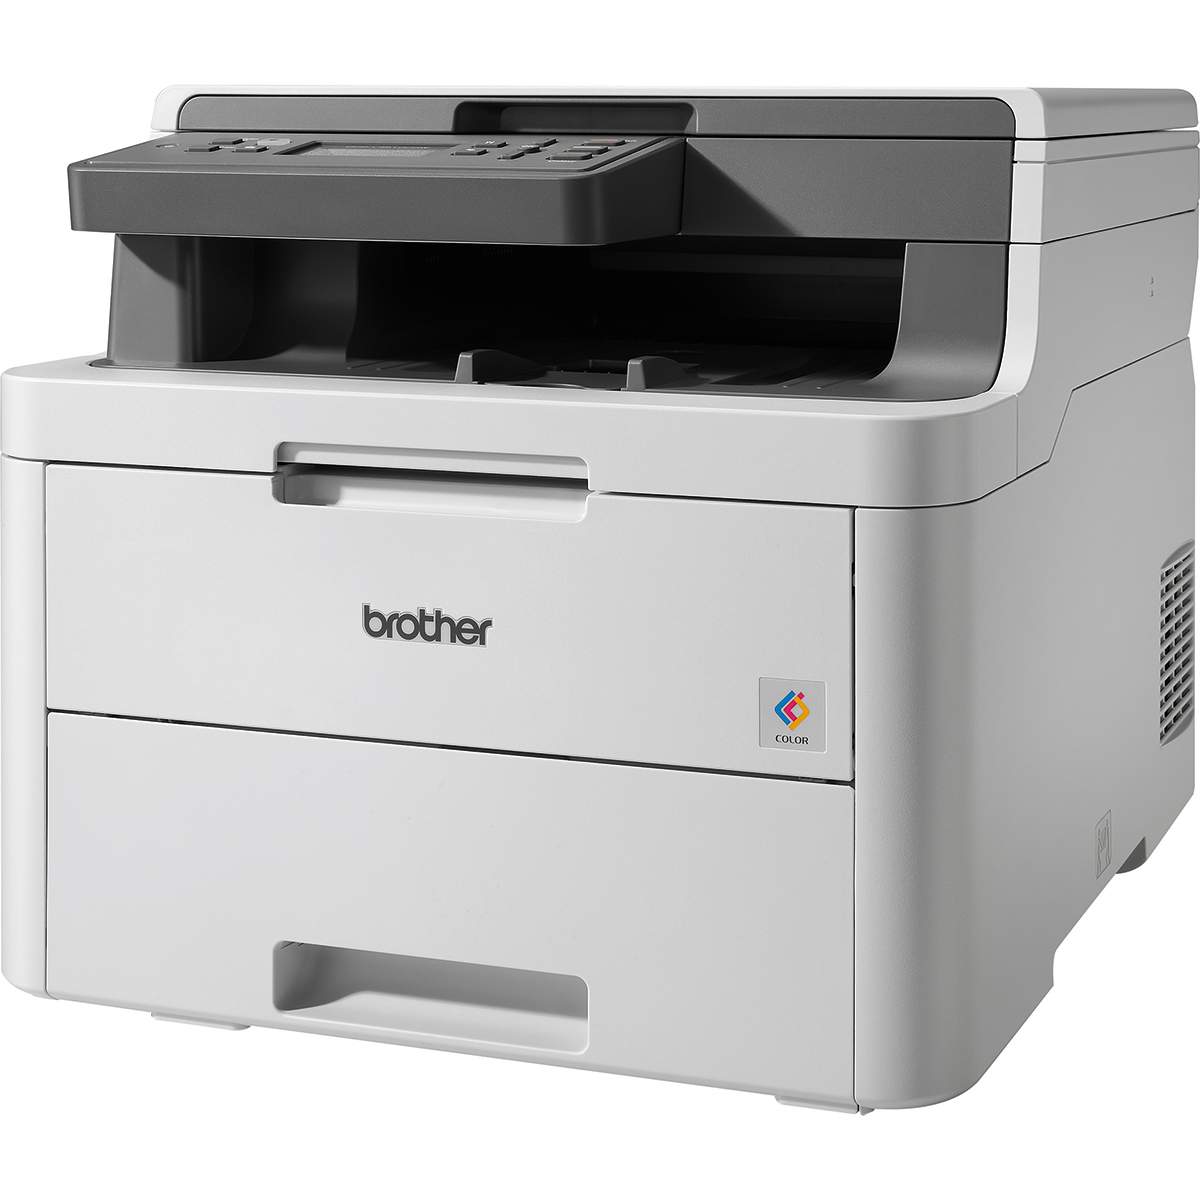 Brother DCP-L3510CDW Colour Wireless LED Multifunction